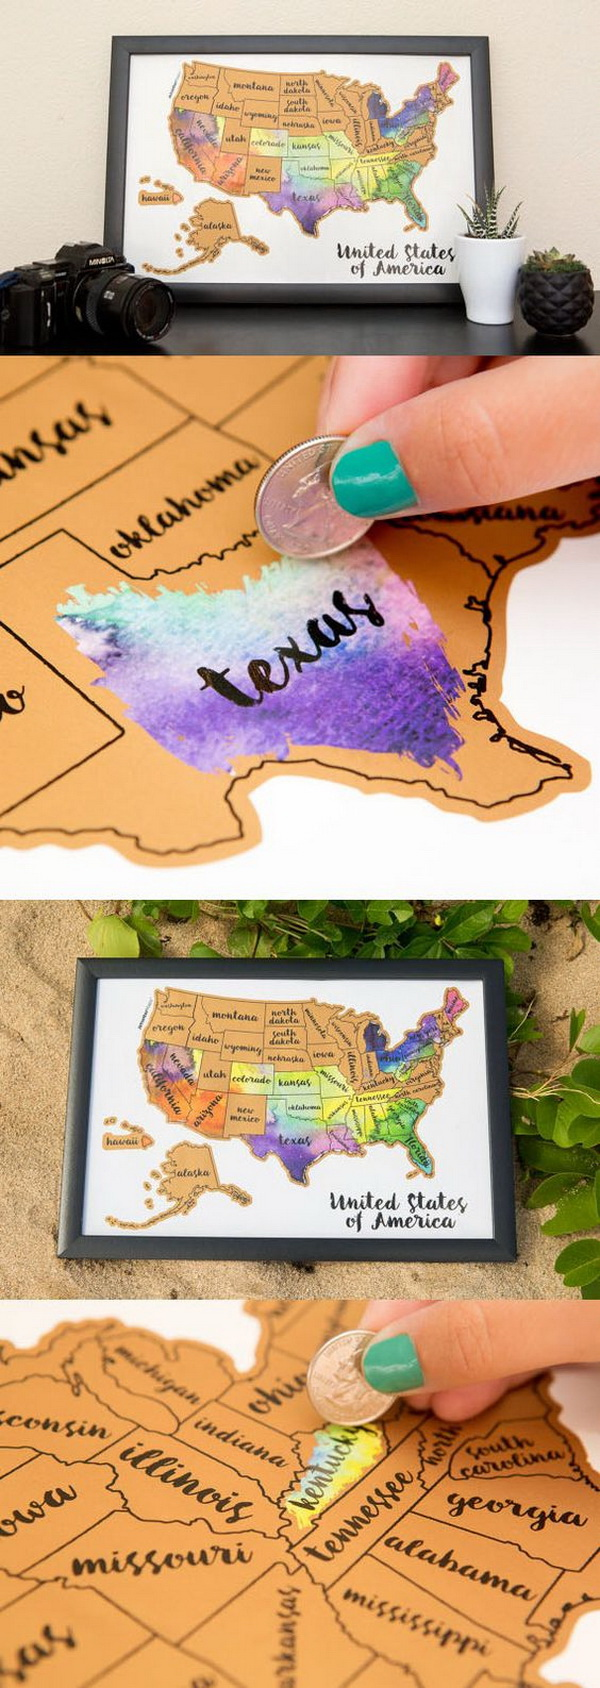 Handmade Watercolor USA Map. Create a unique and gorgeous wall art by using a coin to scratch off the foil to reveal the bright colors of the states you've visited. Bright, bold & interactive wall art to adore your room!